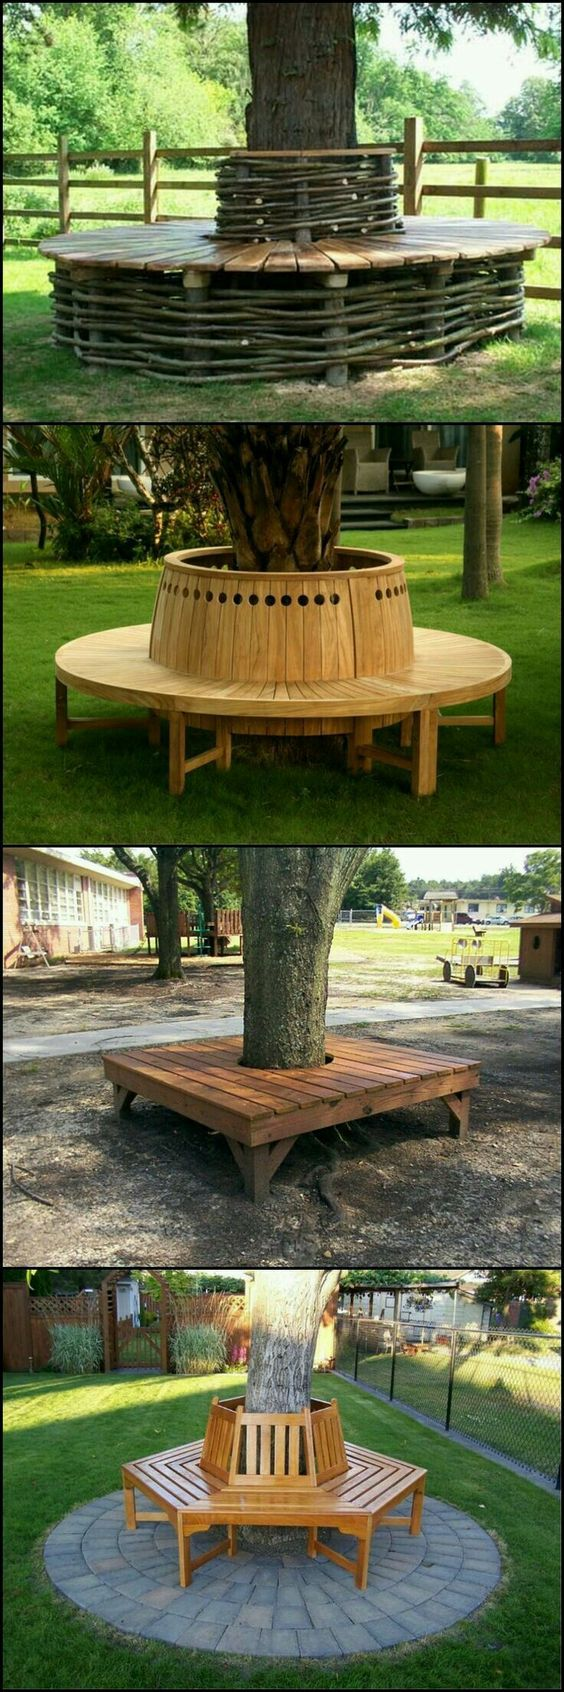 Outdoor Seat Around The Tree. #diyoutdoorprojects